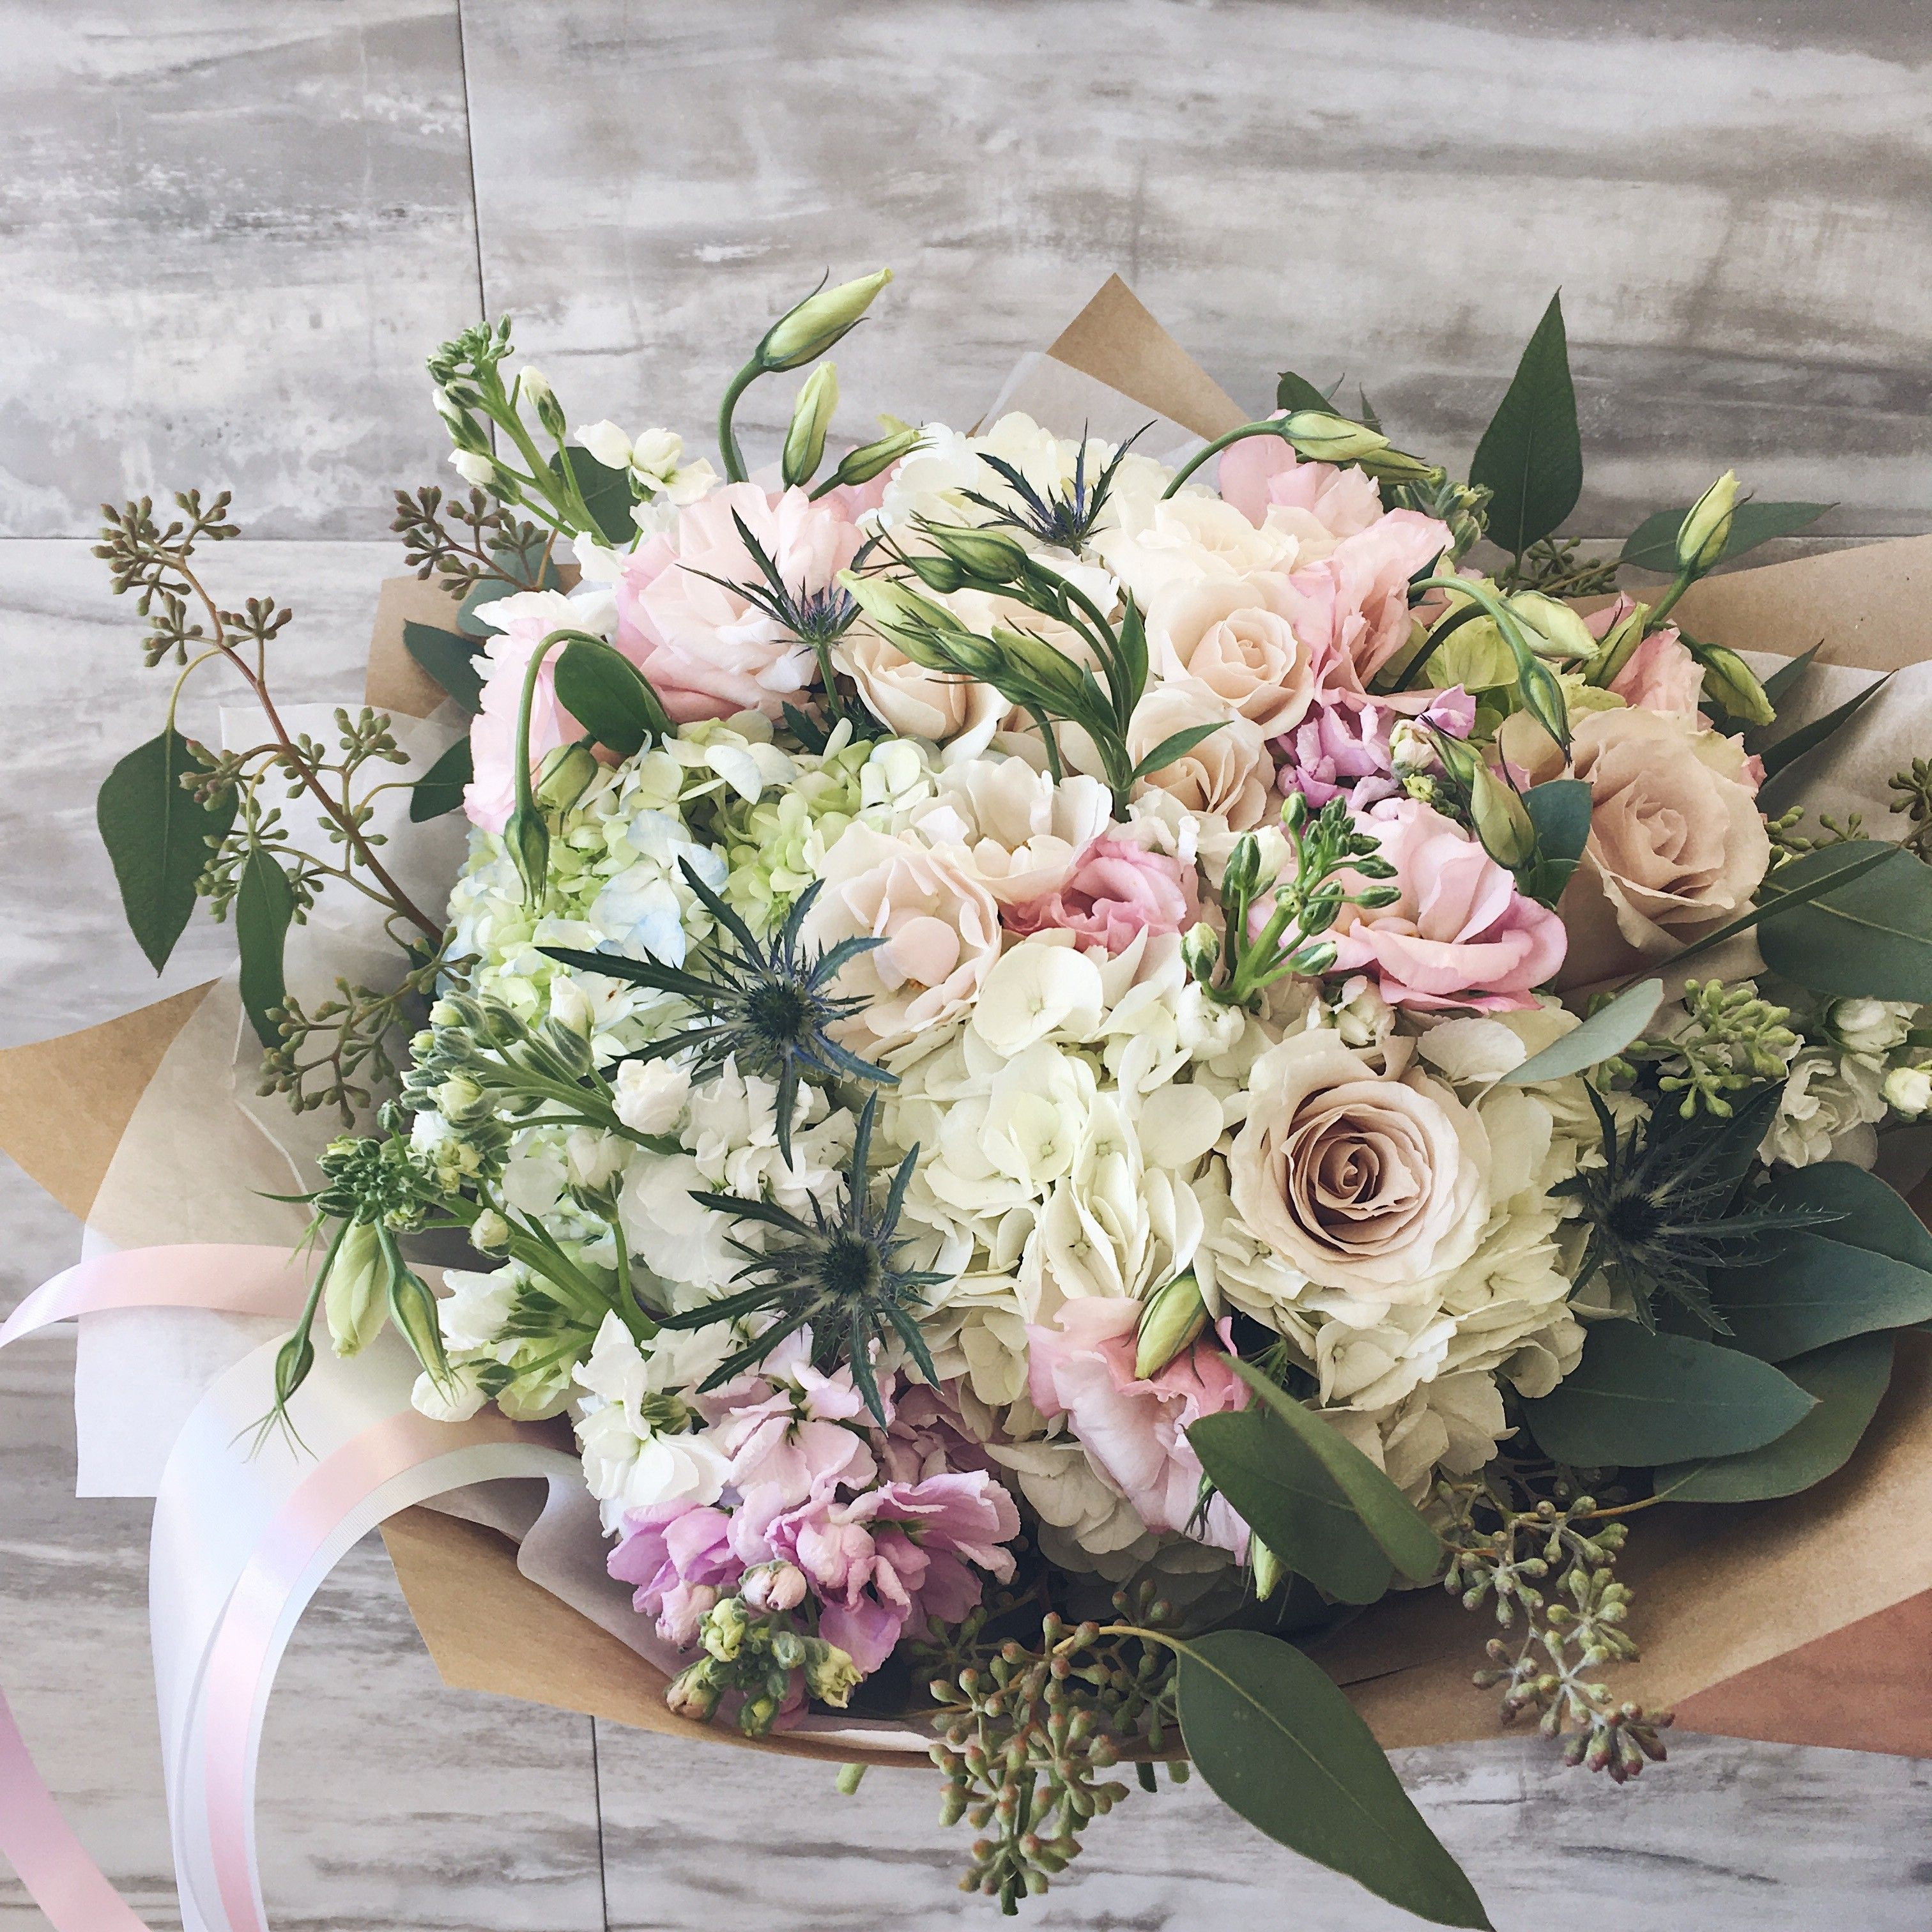 Soft Colors Mixed Large Bouquet With Blush Roses White Hydrangea And Eucaliptus Flower Bouquet Wedding Wedding Flowers Beautiful Flower Arrangements